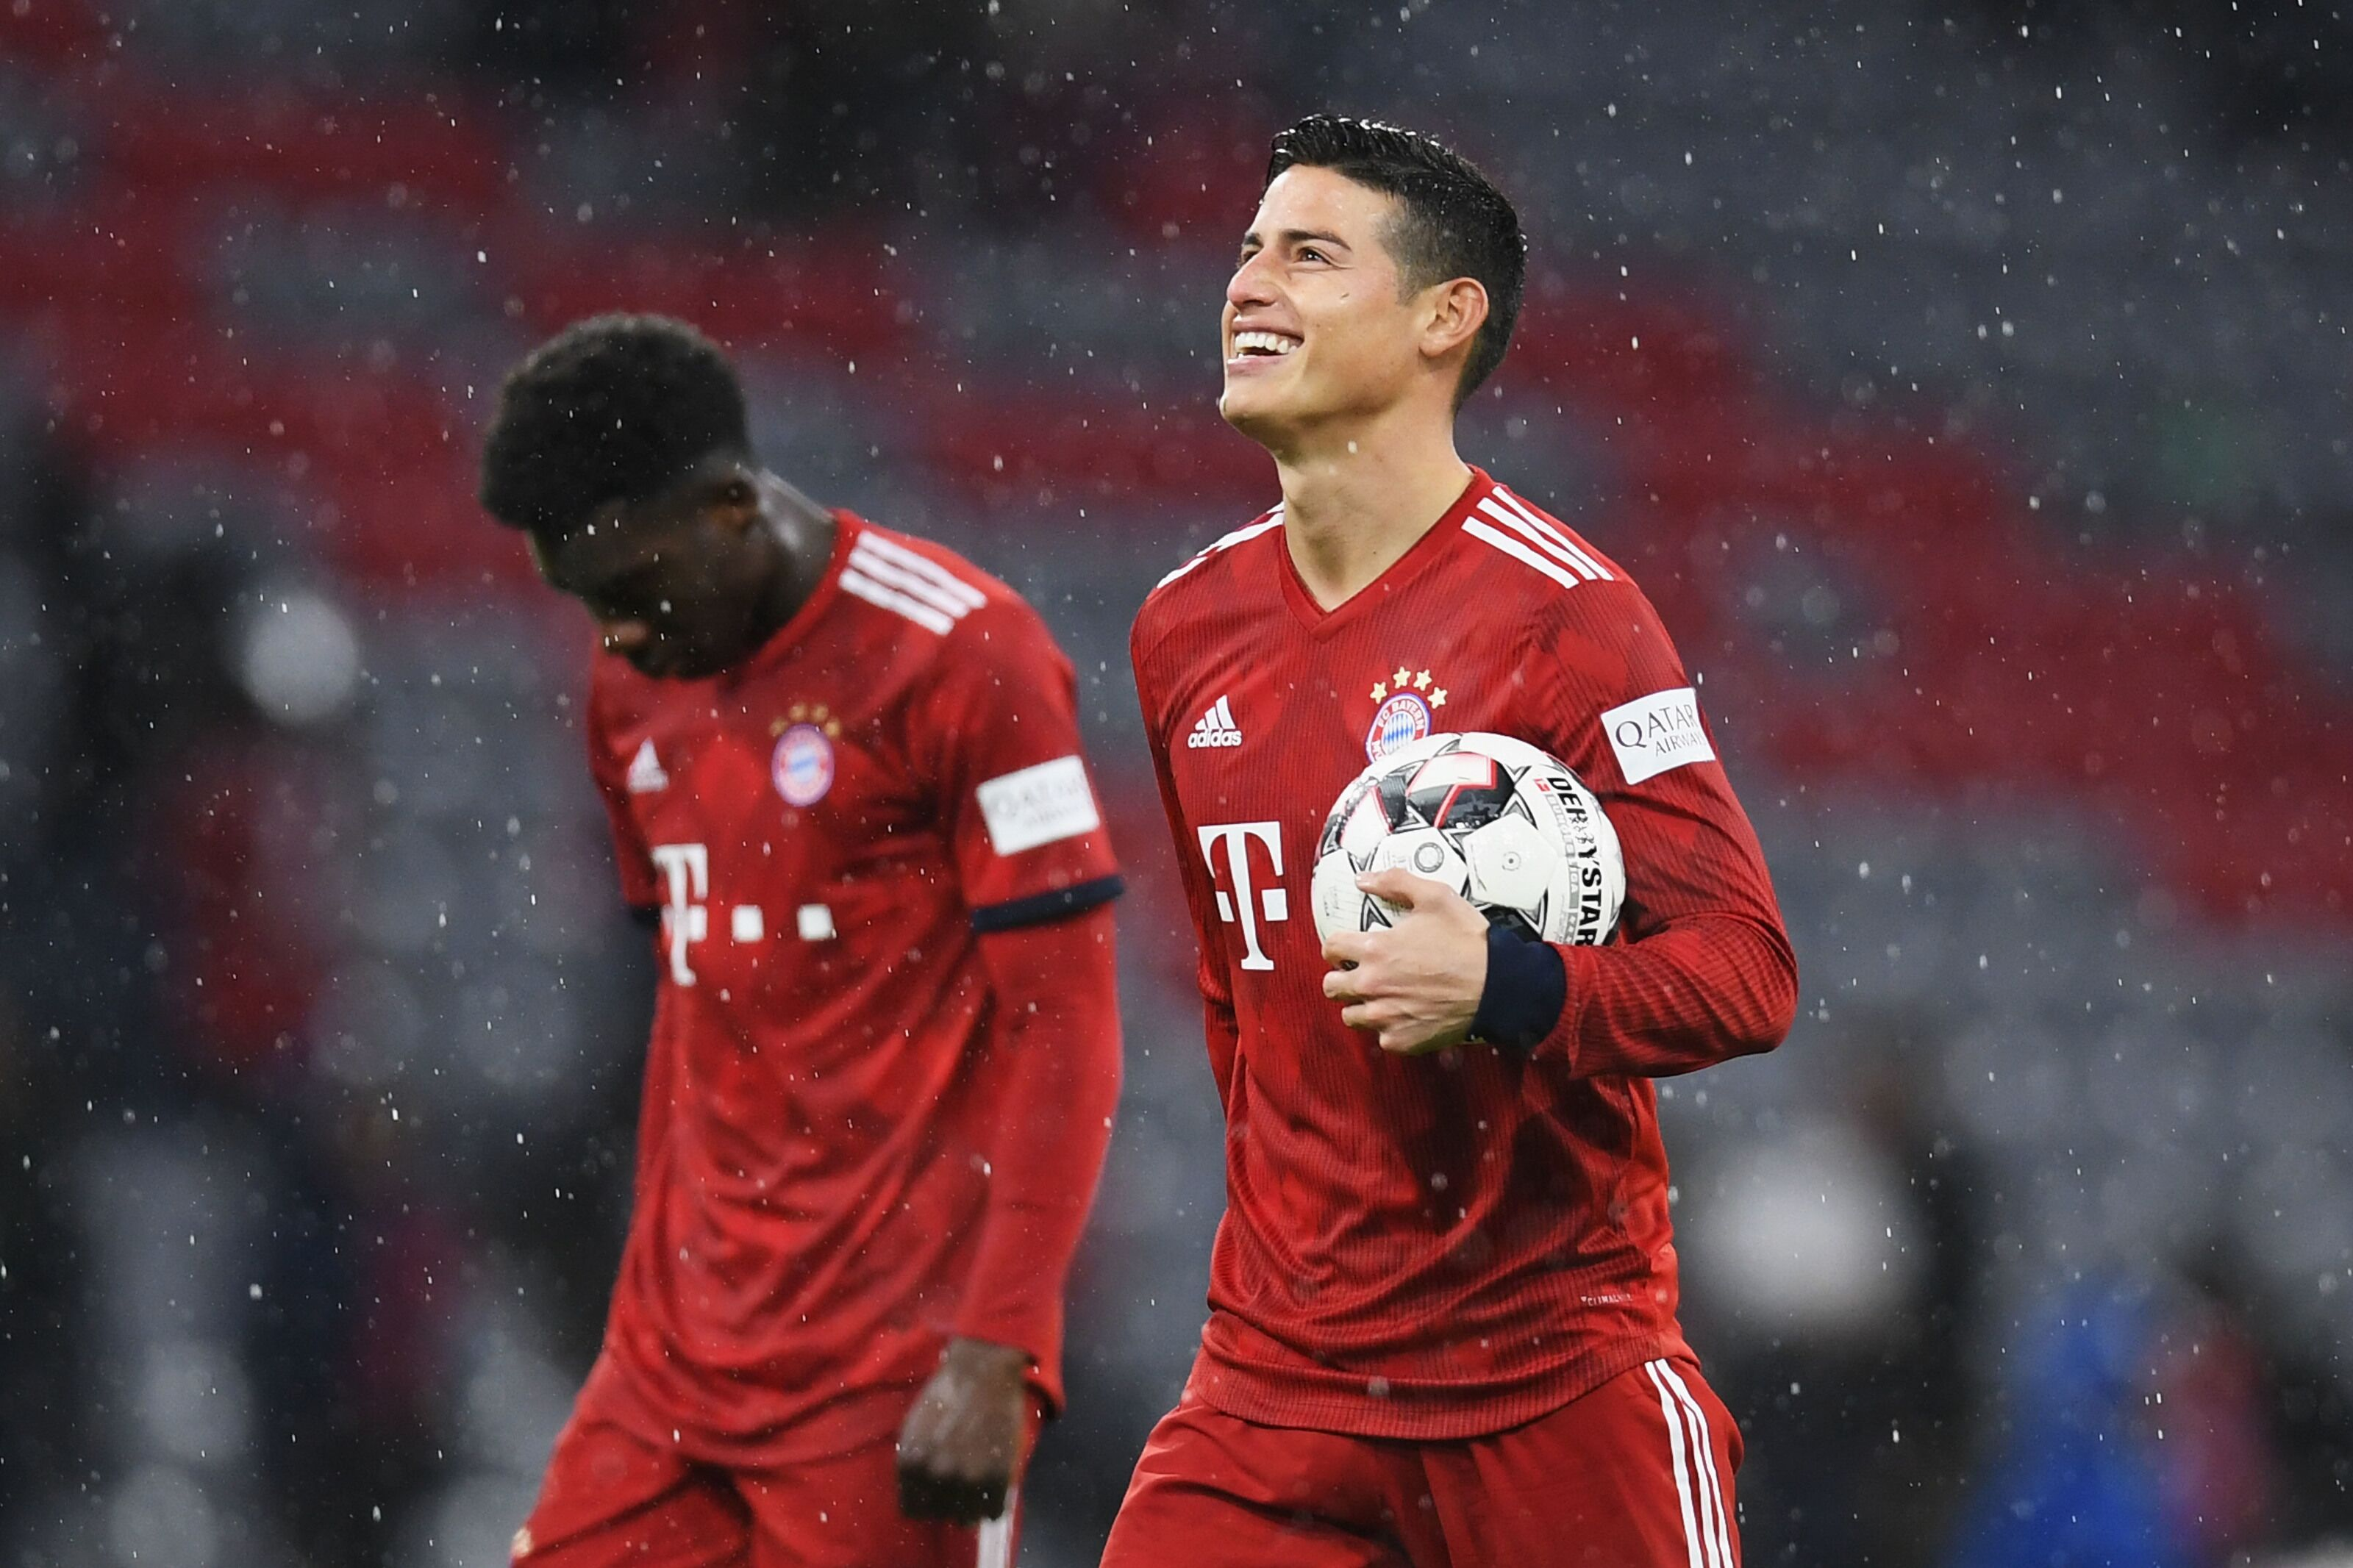 Bayern Munich bounce back from loss, dominate Mainz